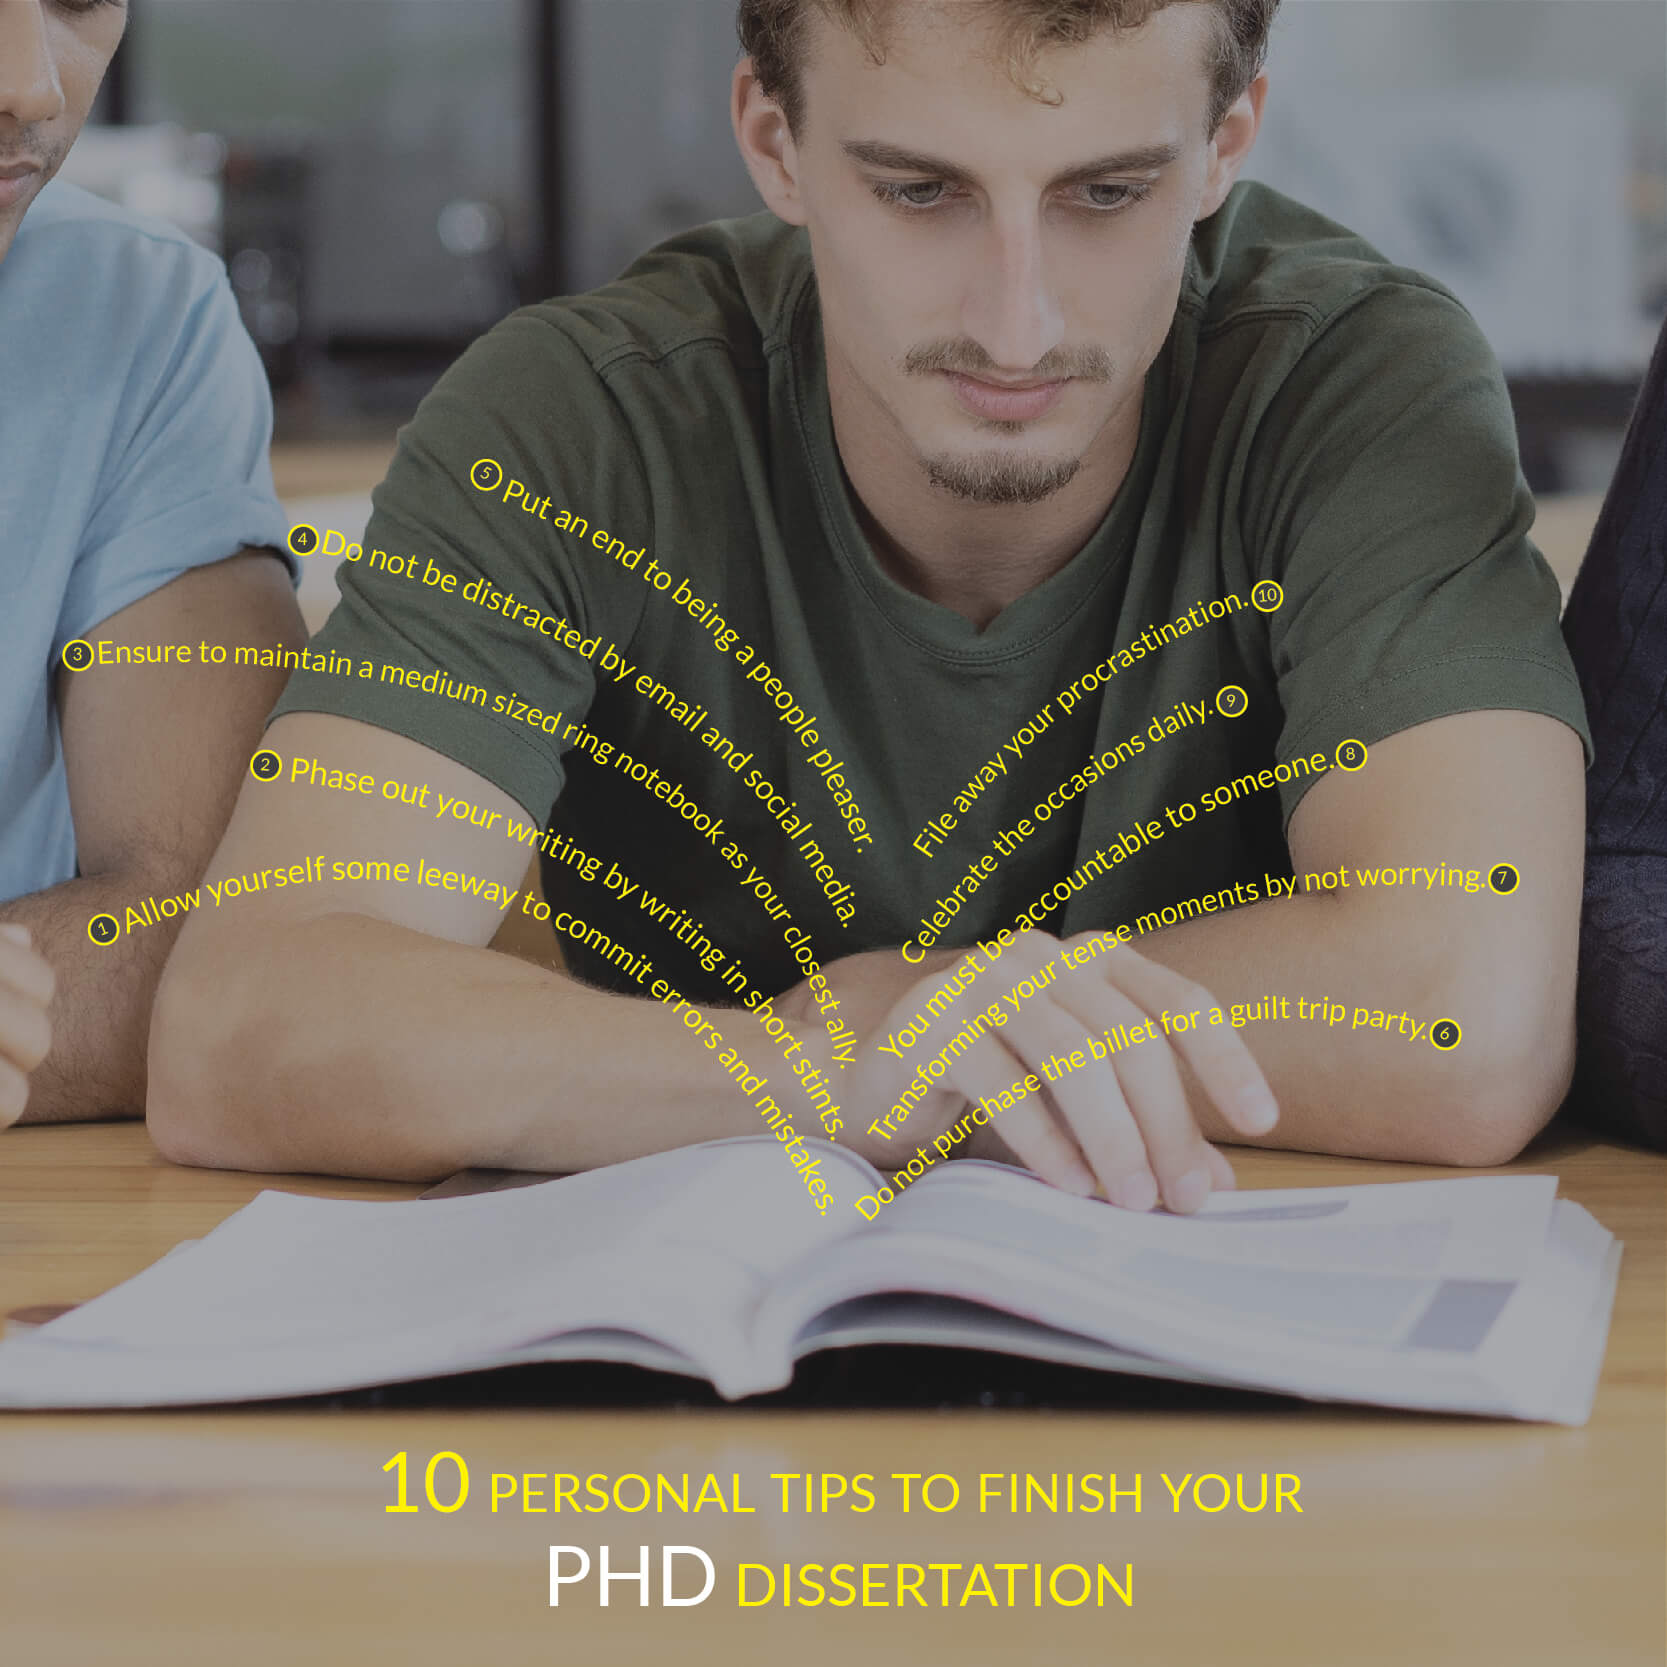 10 motivational tips for your PHD journey